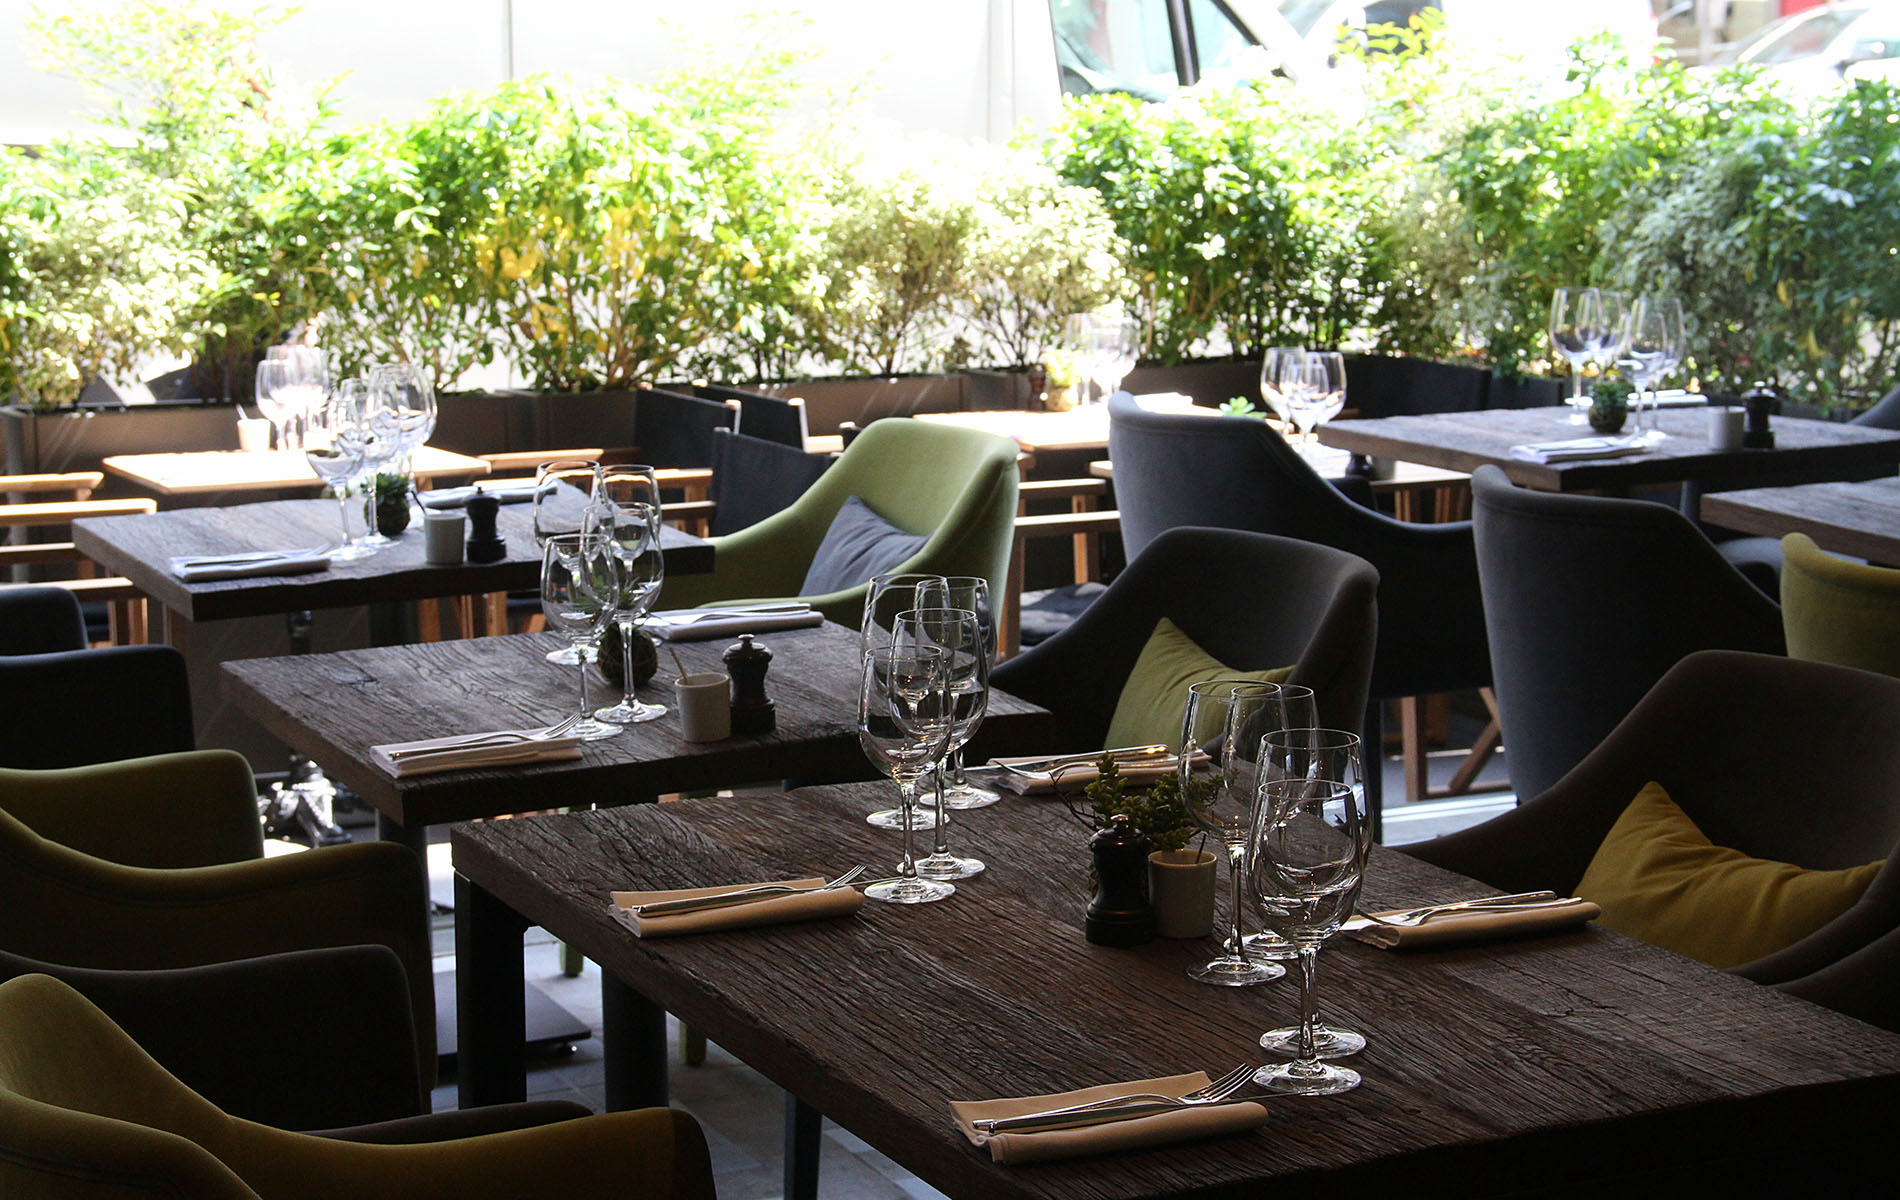 Restaurant juvia paris - Restaurant terrasse ou jardin paris limoges ...